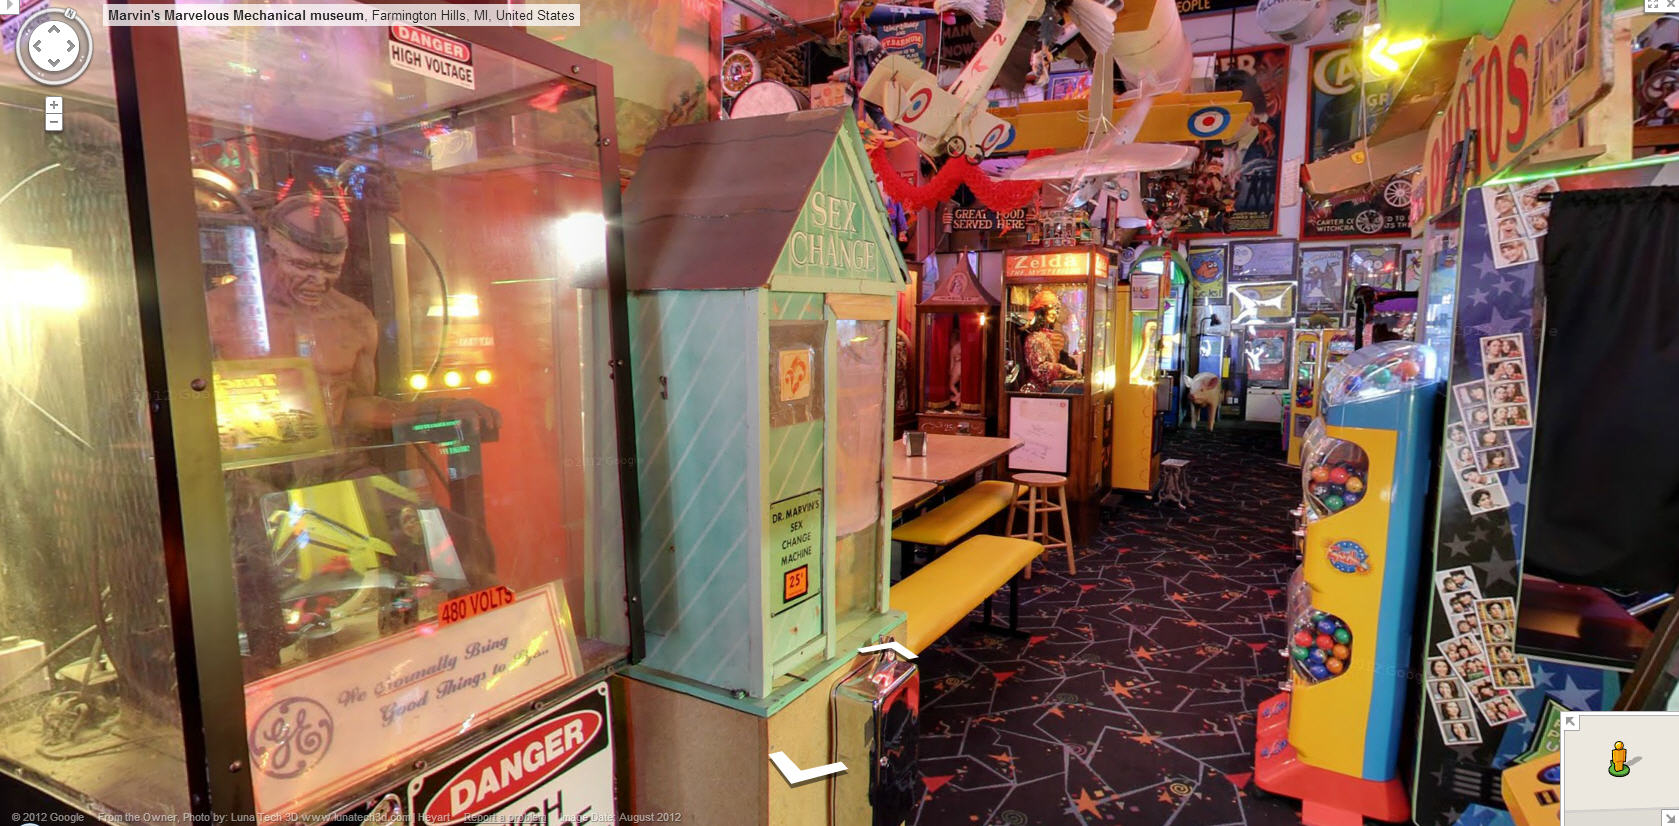 sex-change-how-does-that-work-marvins-marvelous-mechanical-museum--